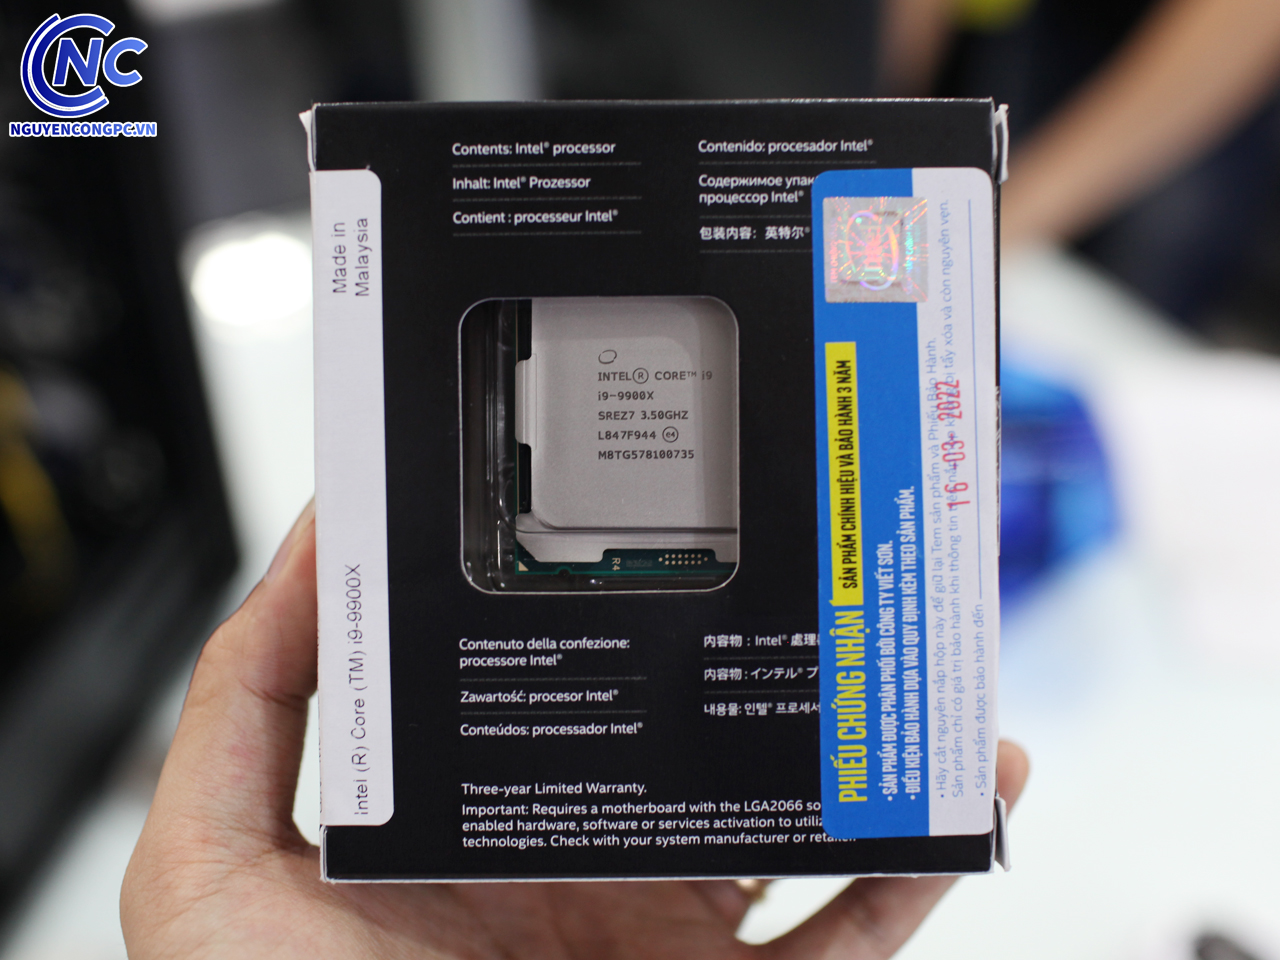 CPU Intel Core i9 9900X